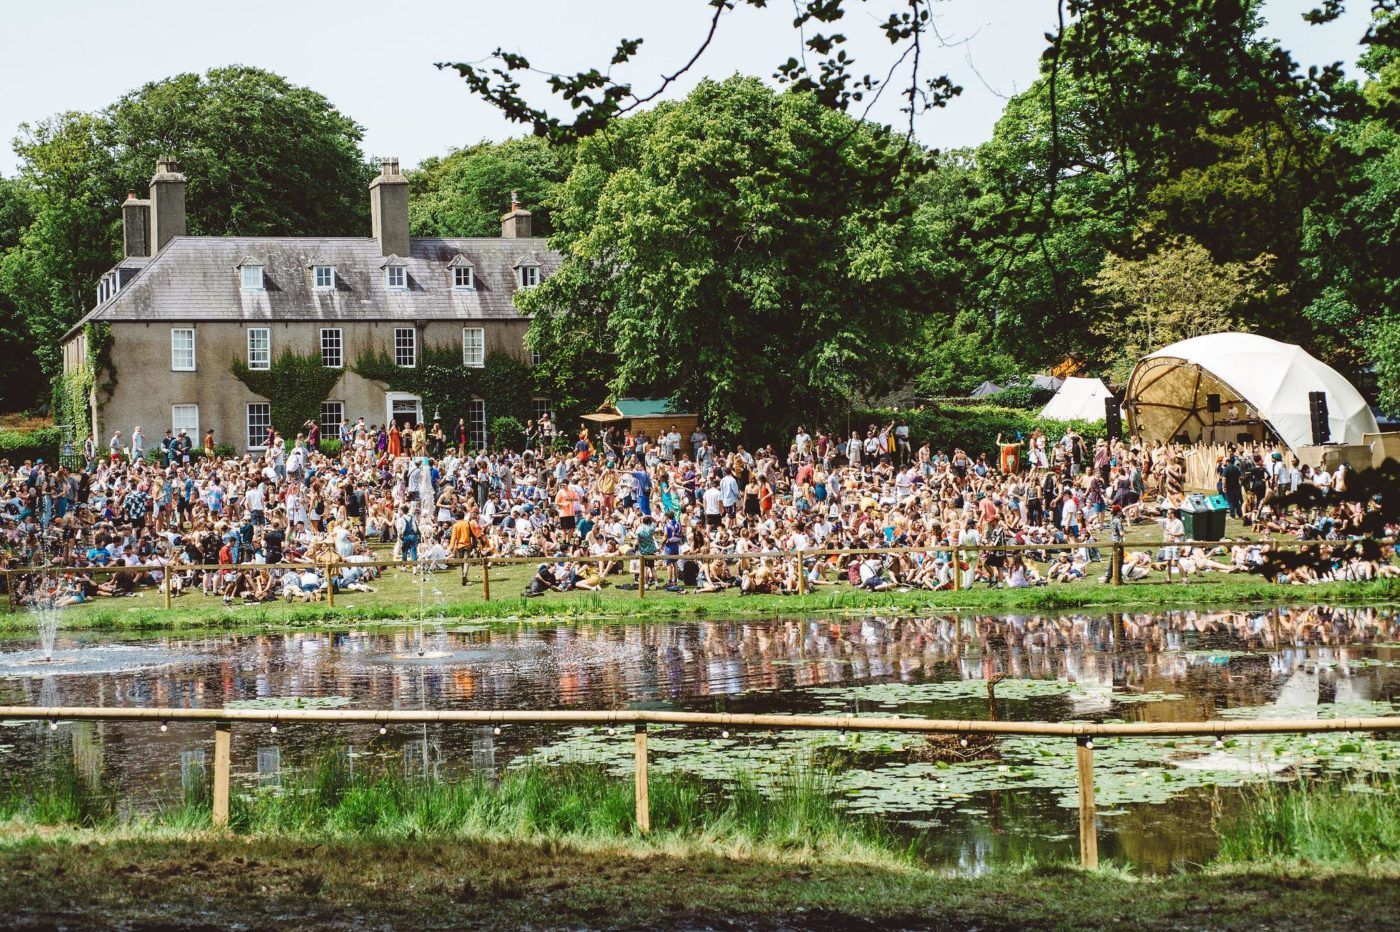 Image of a lake with a large festival crowd in the distance